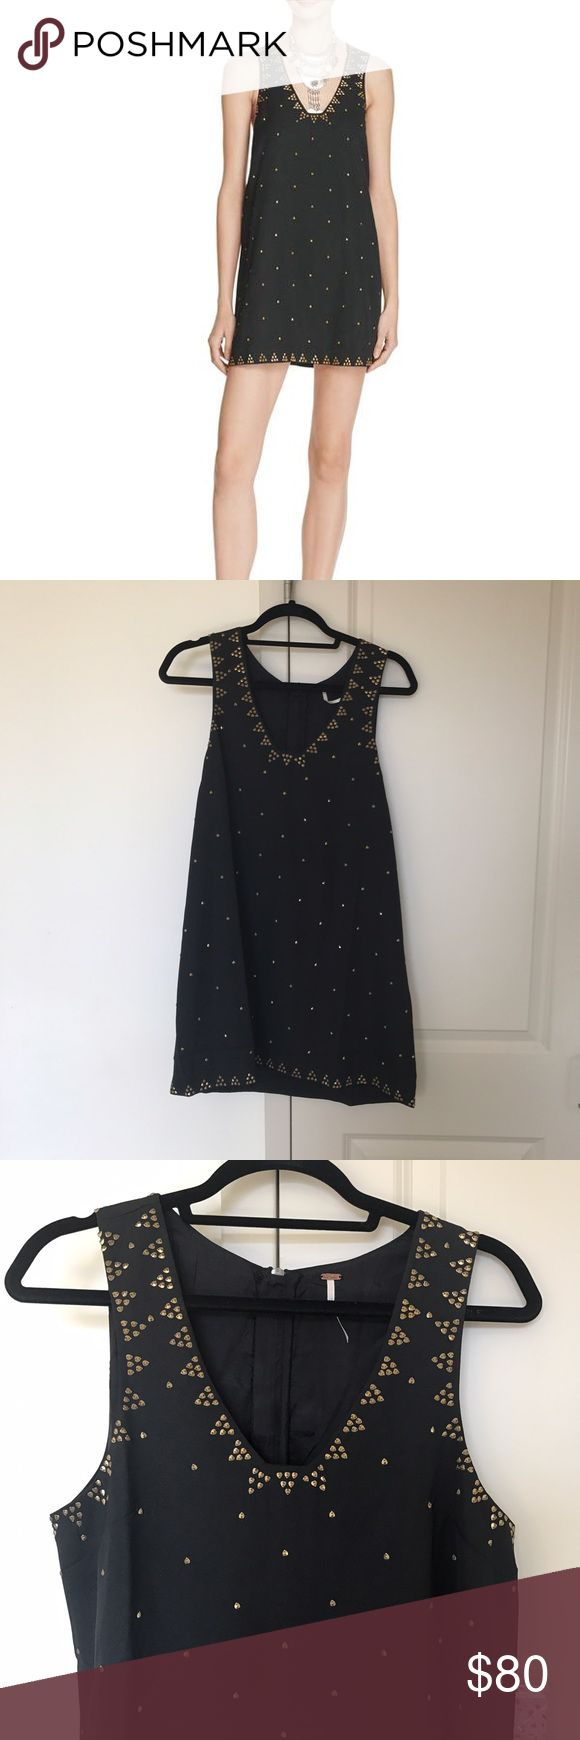 Free People Sequin Black Shift Dress Brand new Free People Dresses